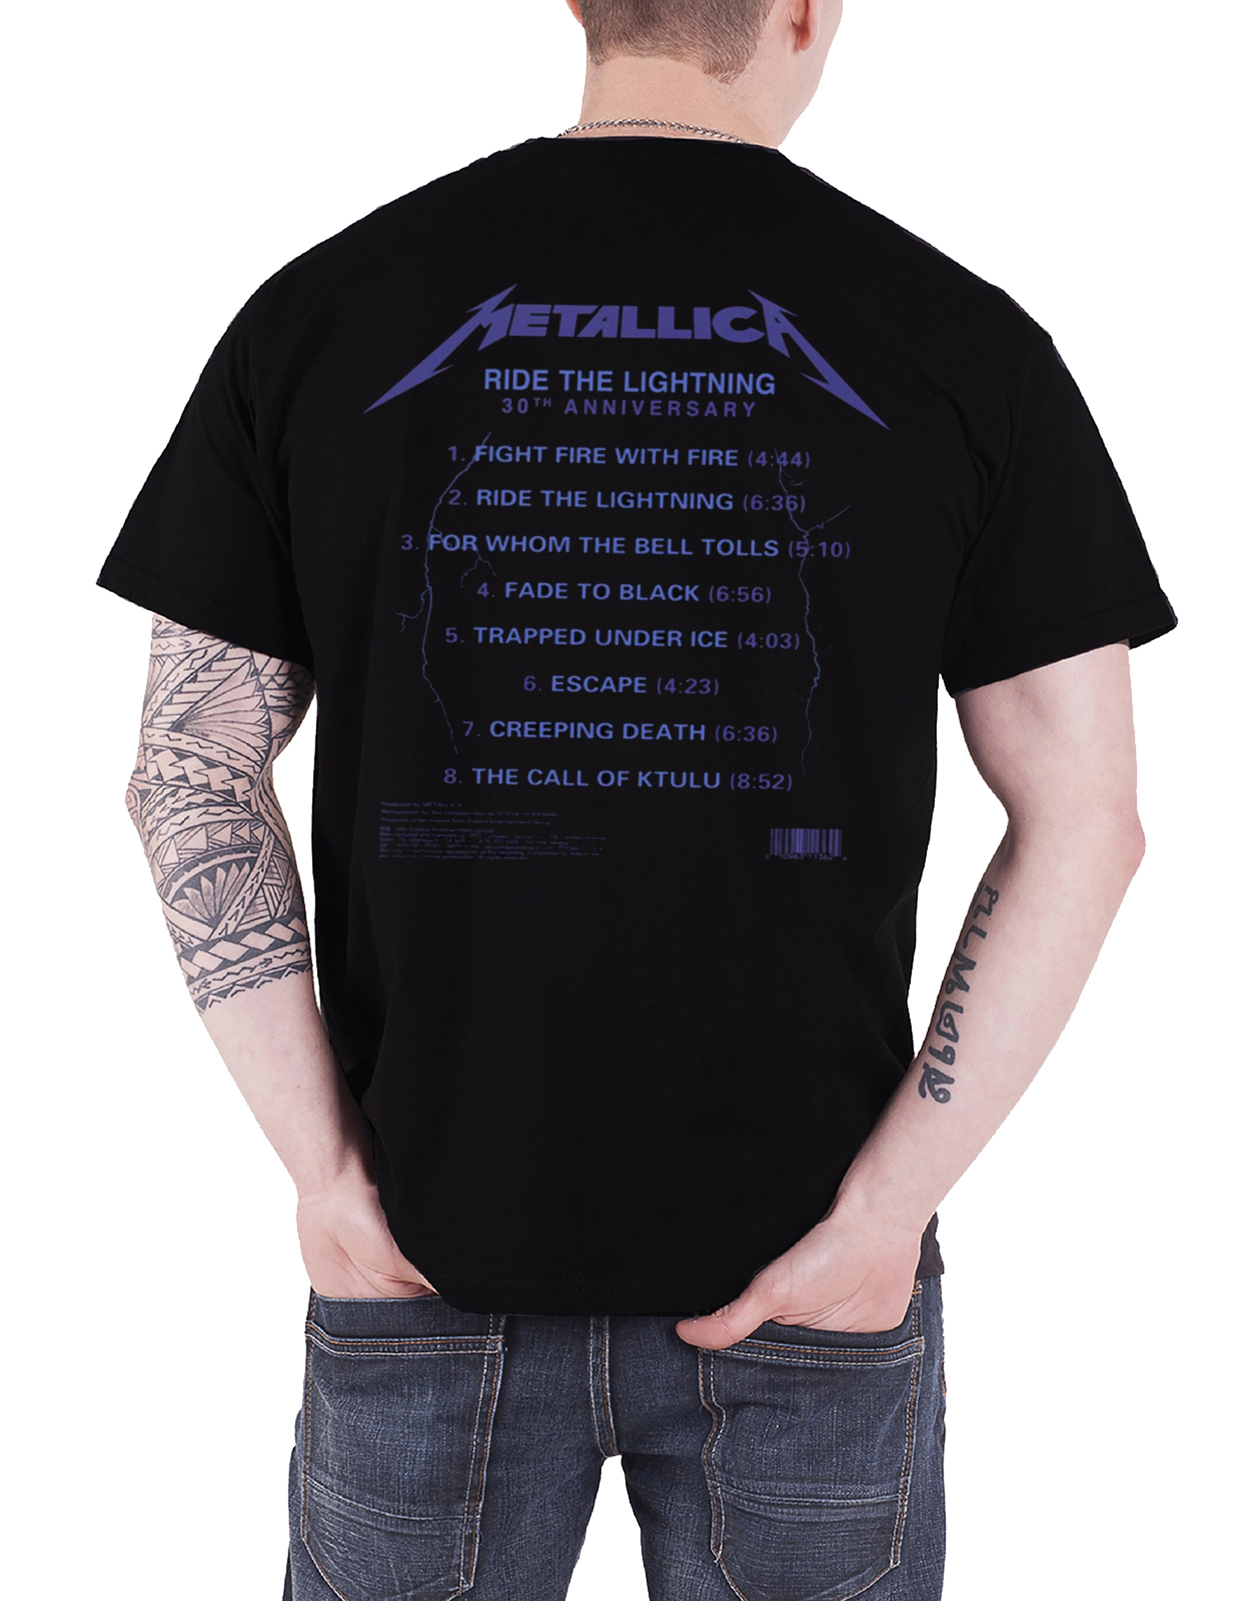 Official-Metallica-T-Shirt-Hardwired-Justice-for-all-RTL-band-logo-mens-new Indexbild 97